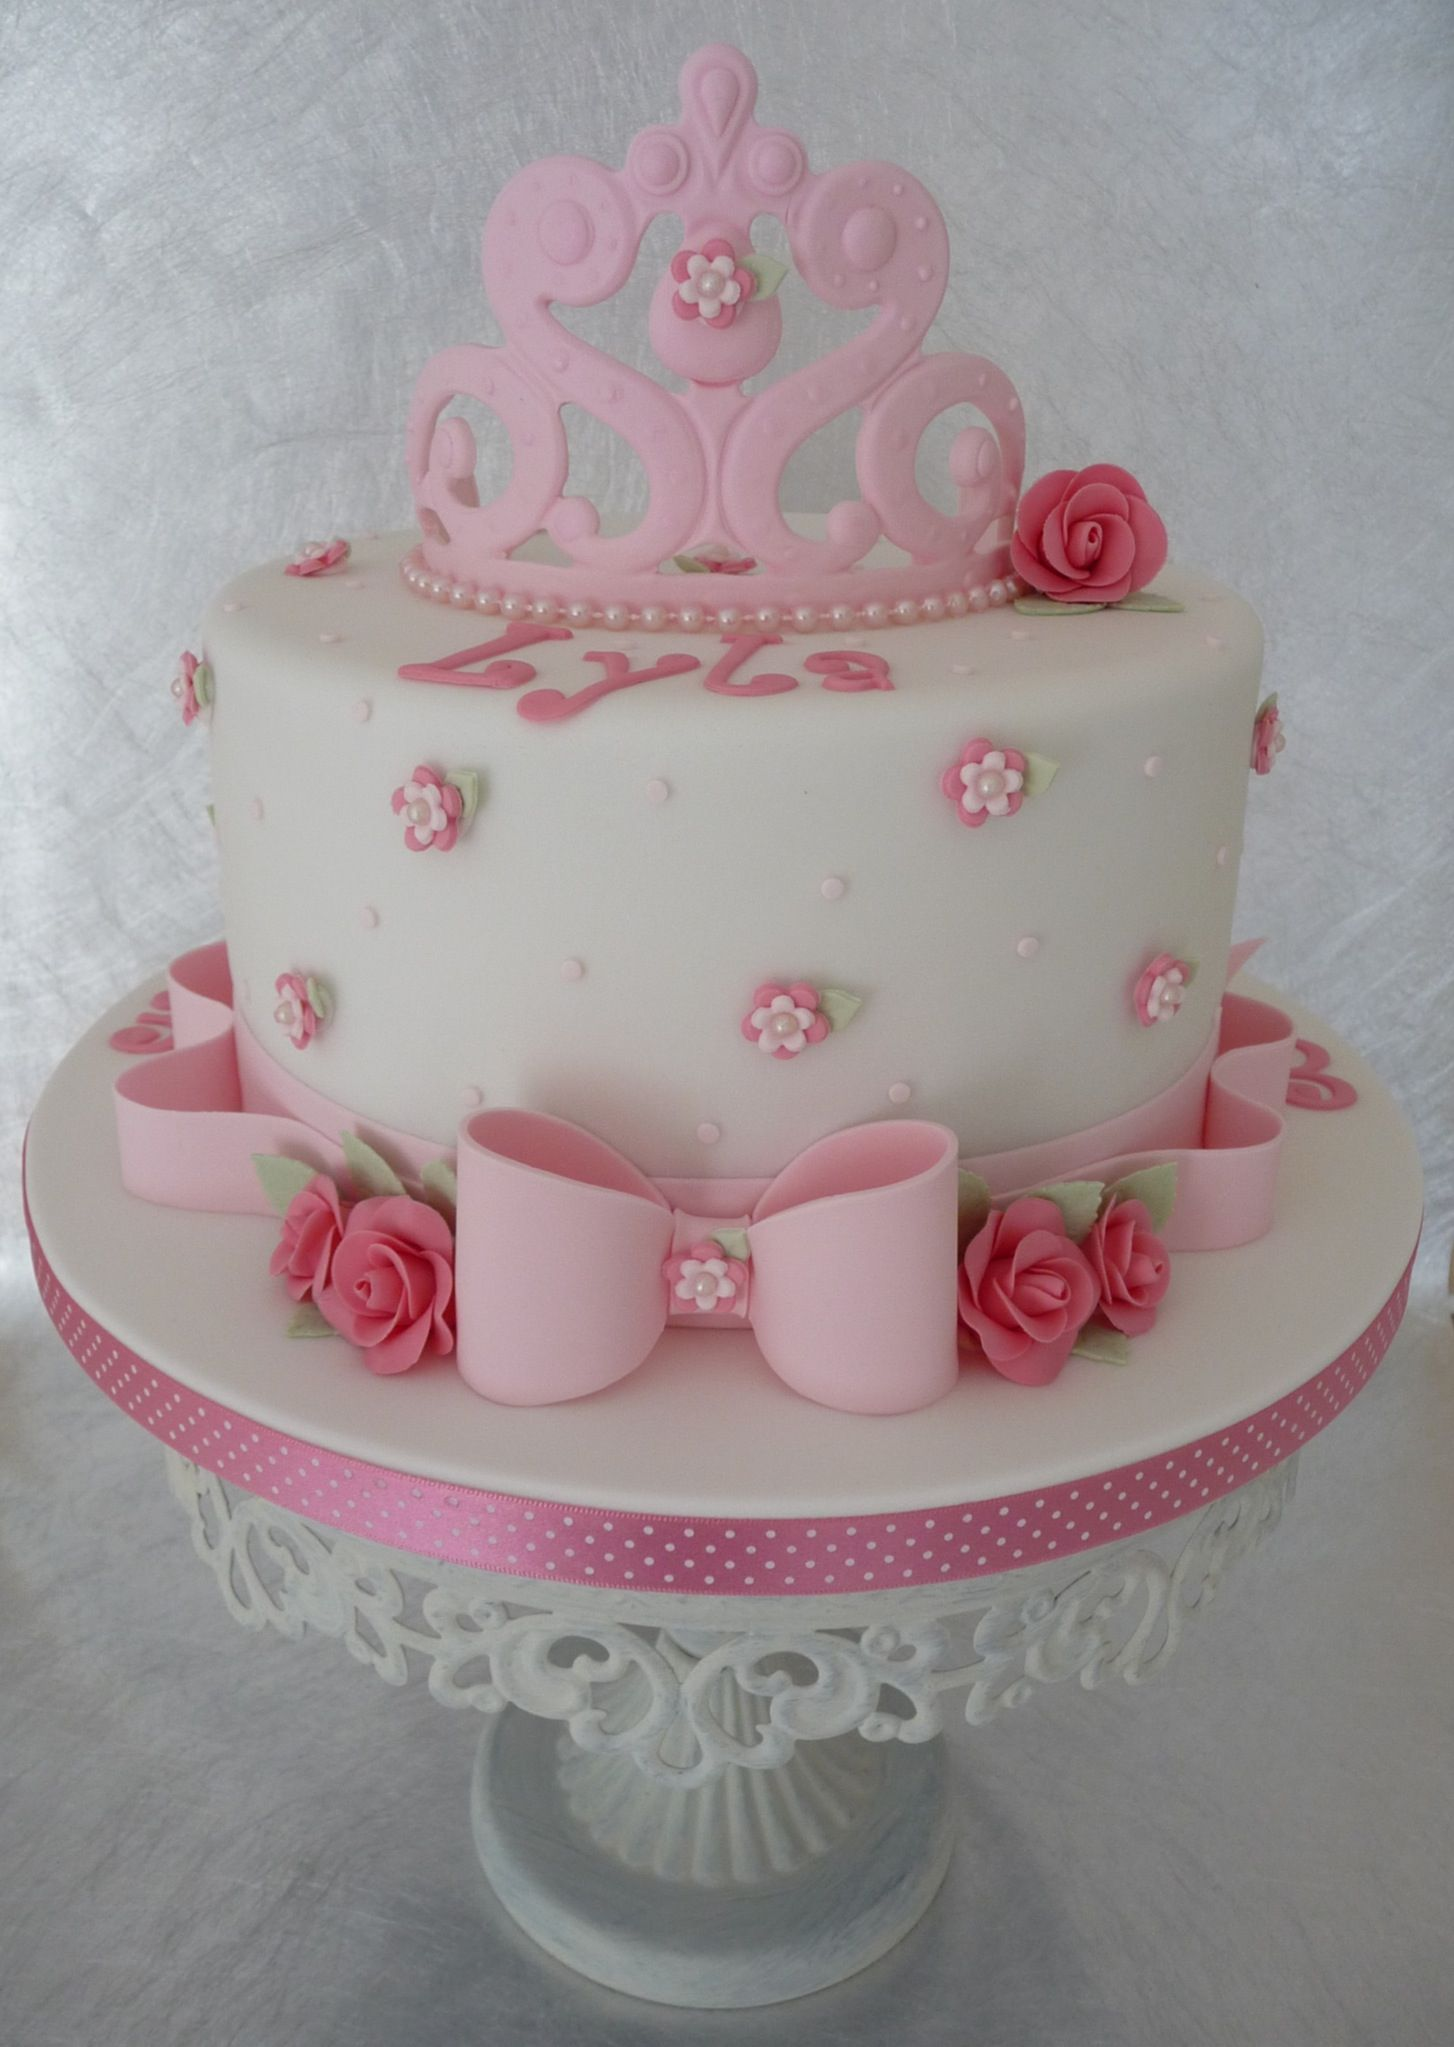 Pretty Shabby Chic Birthday Cake